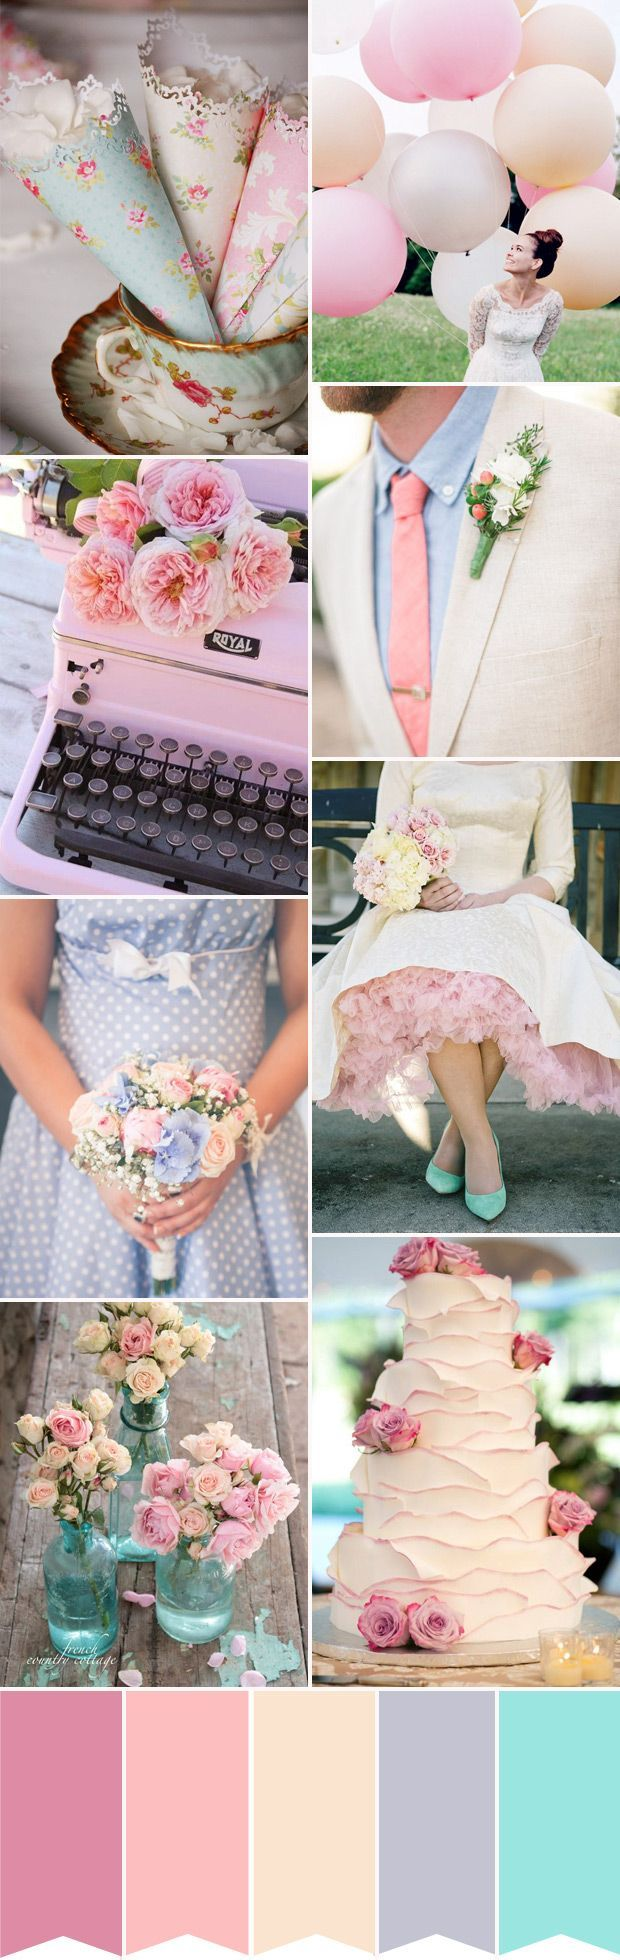 Pretty Pastels: Pink and Blue Colour Palette